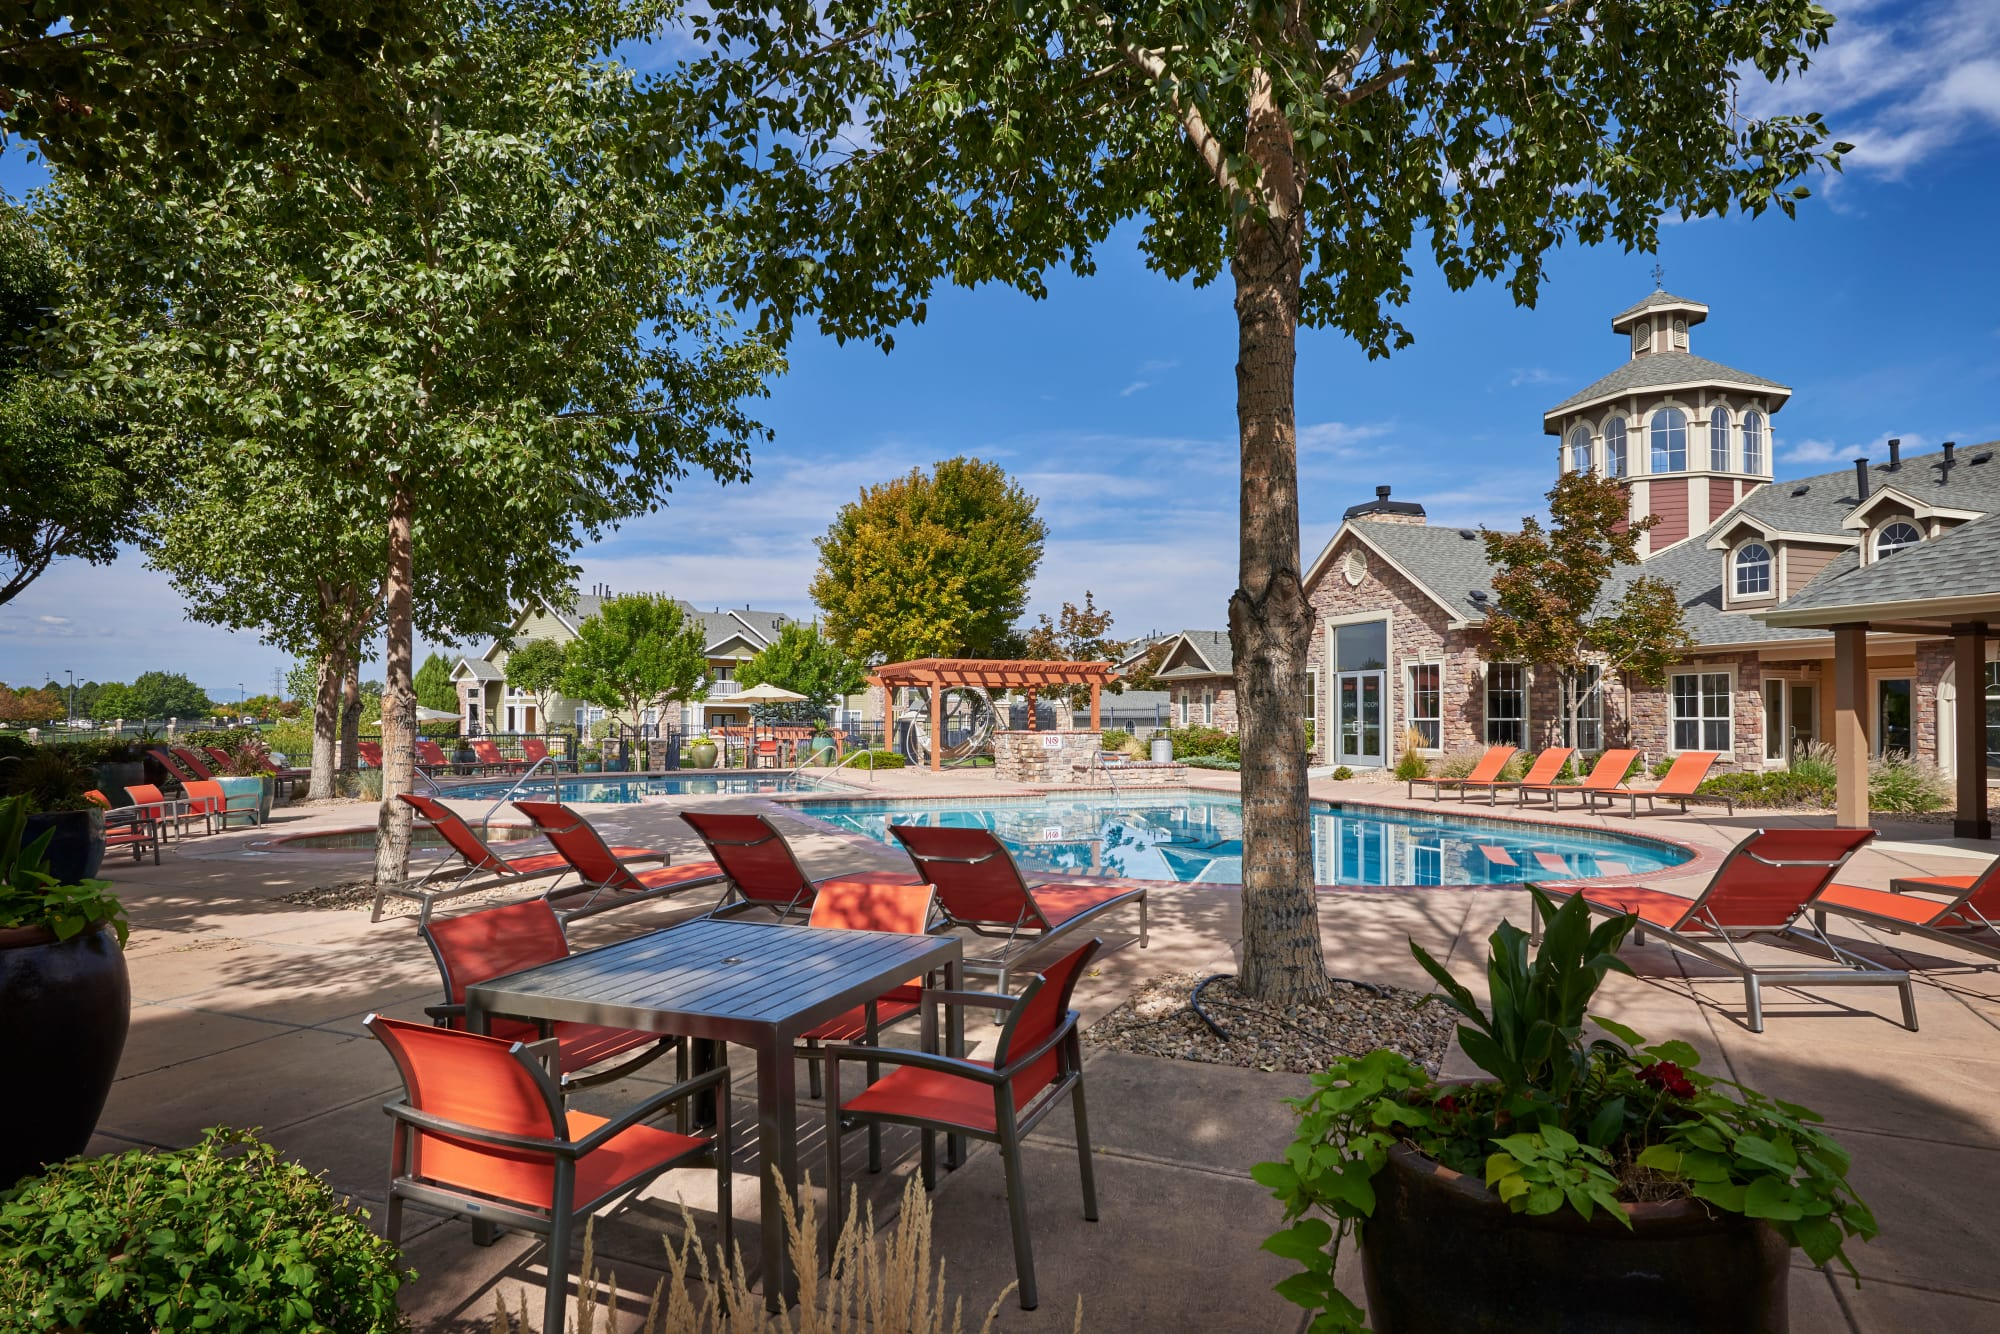 exterior pool view with tables and chairs at Gateway Park Apartments in Denver, CO